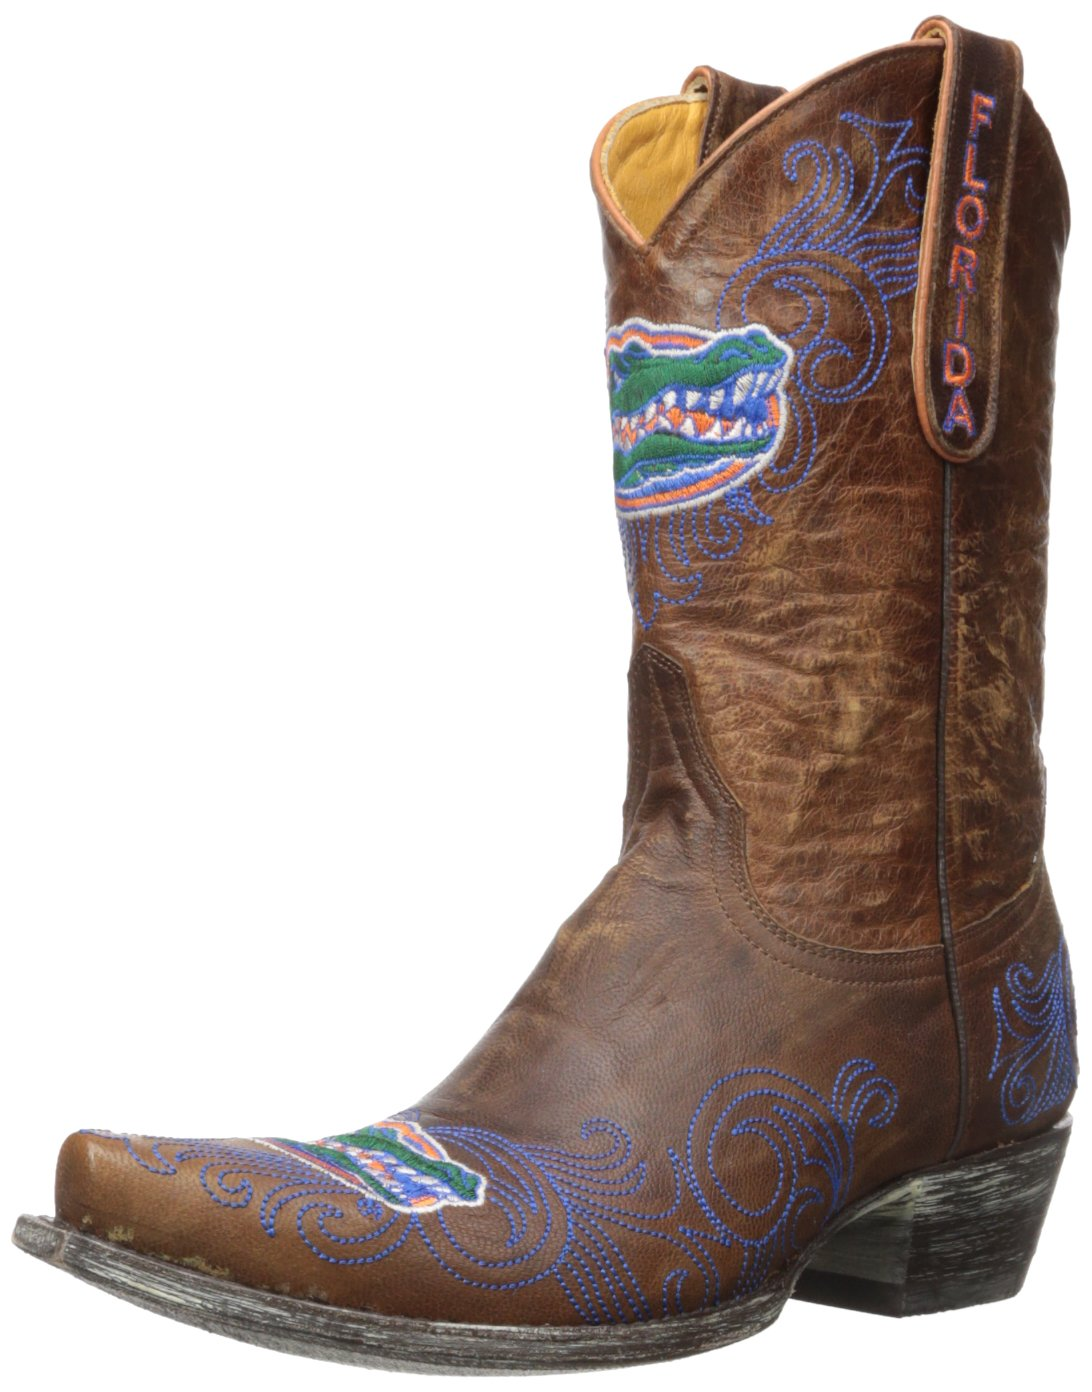 NCAA Florida Gators Women's 10-Inch Gameday Boots Brass